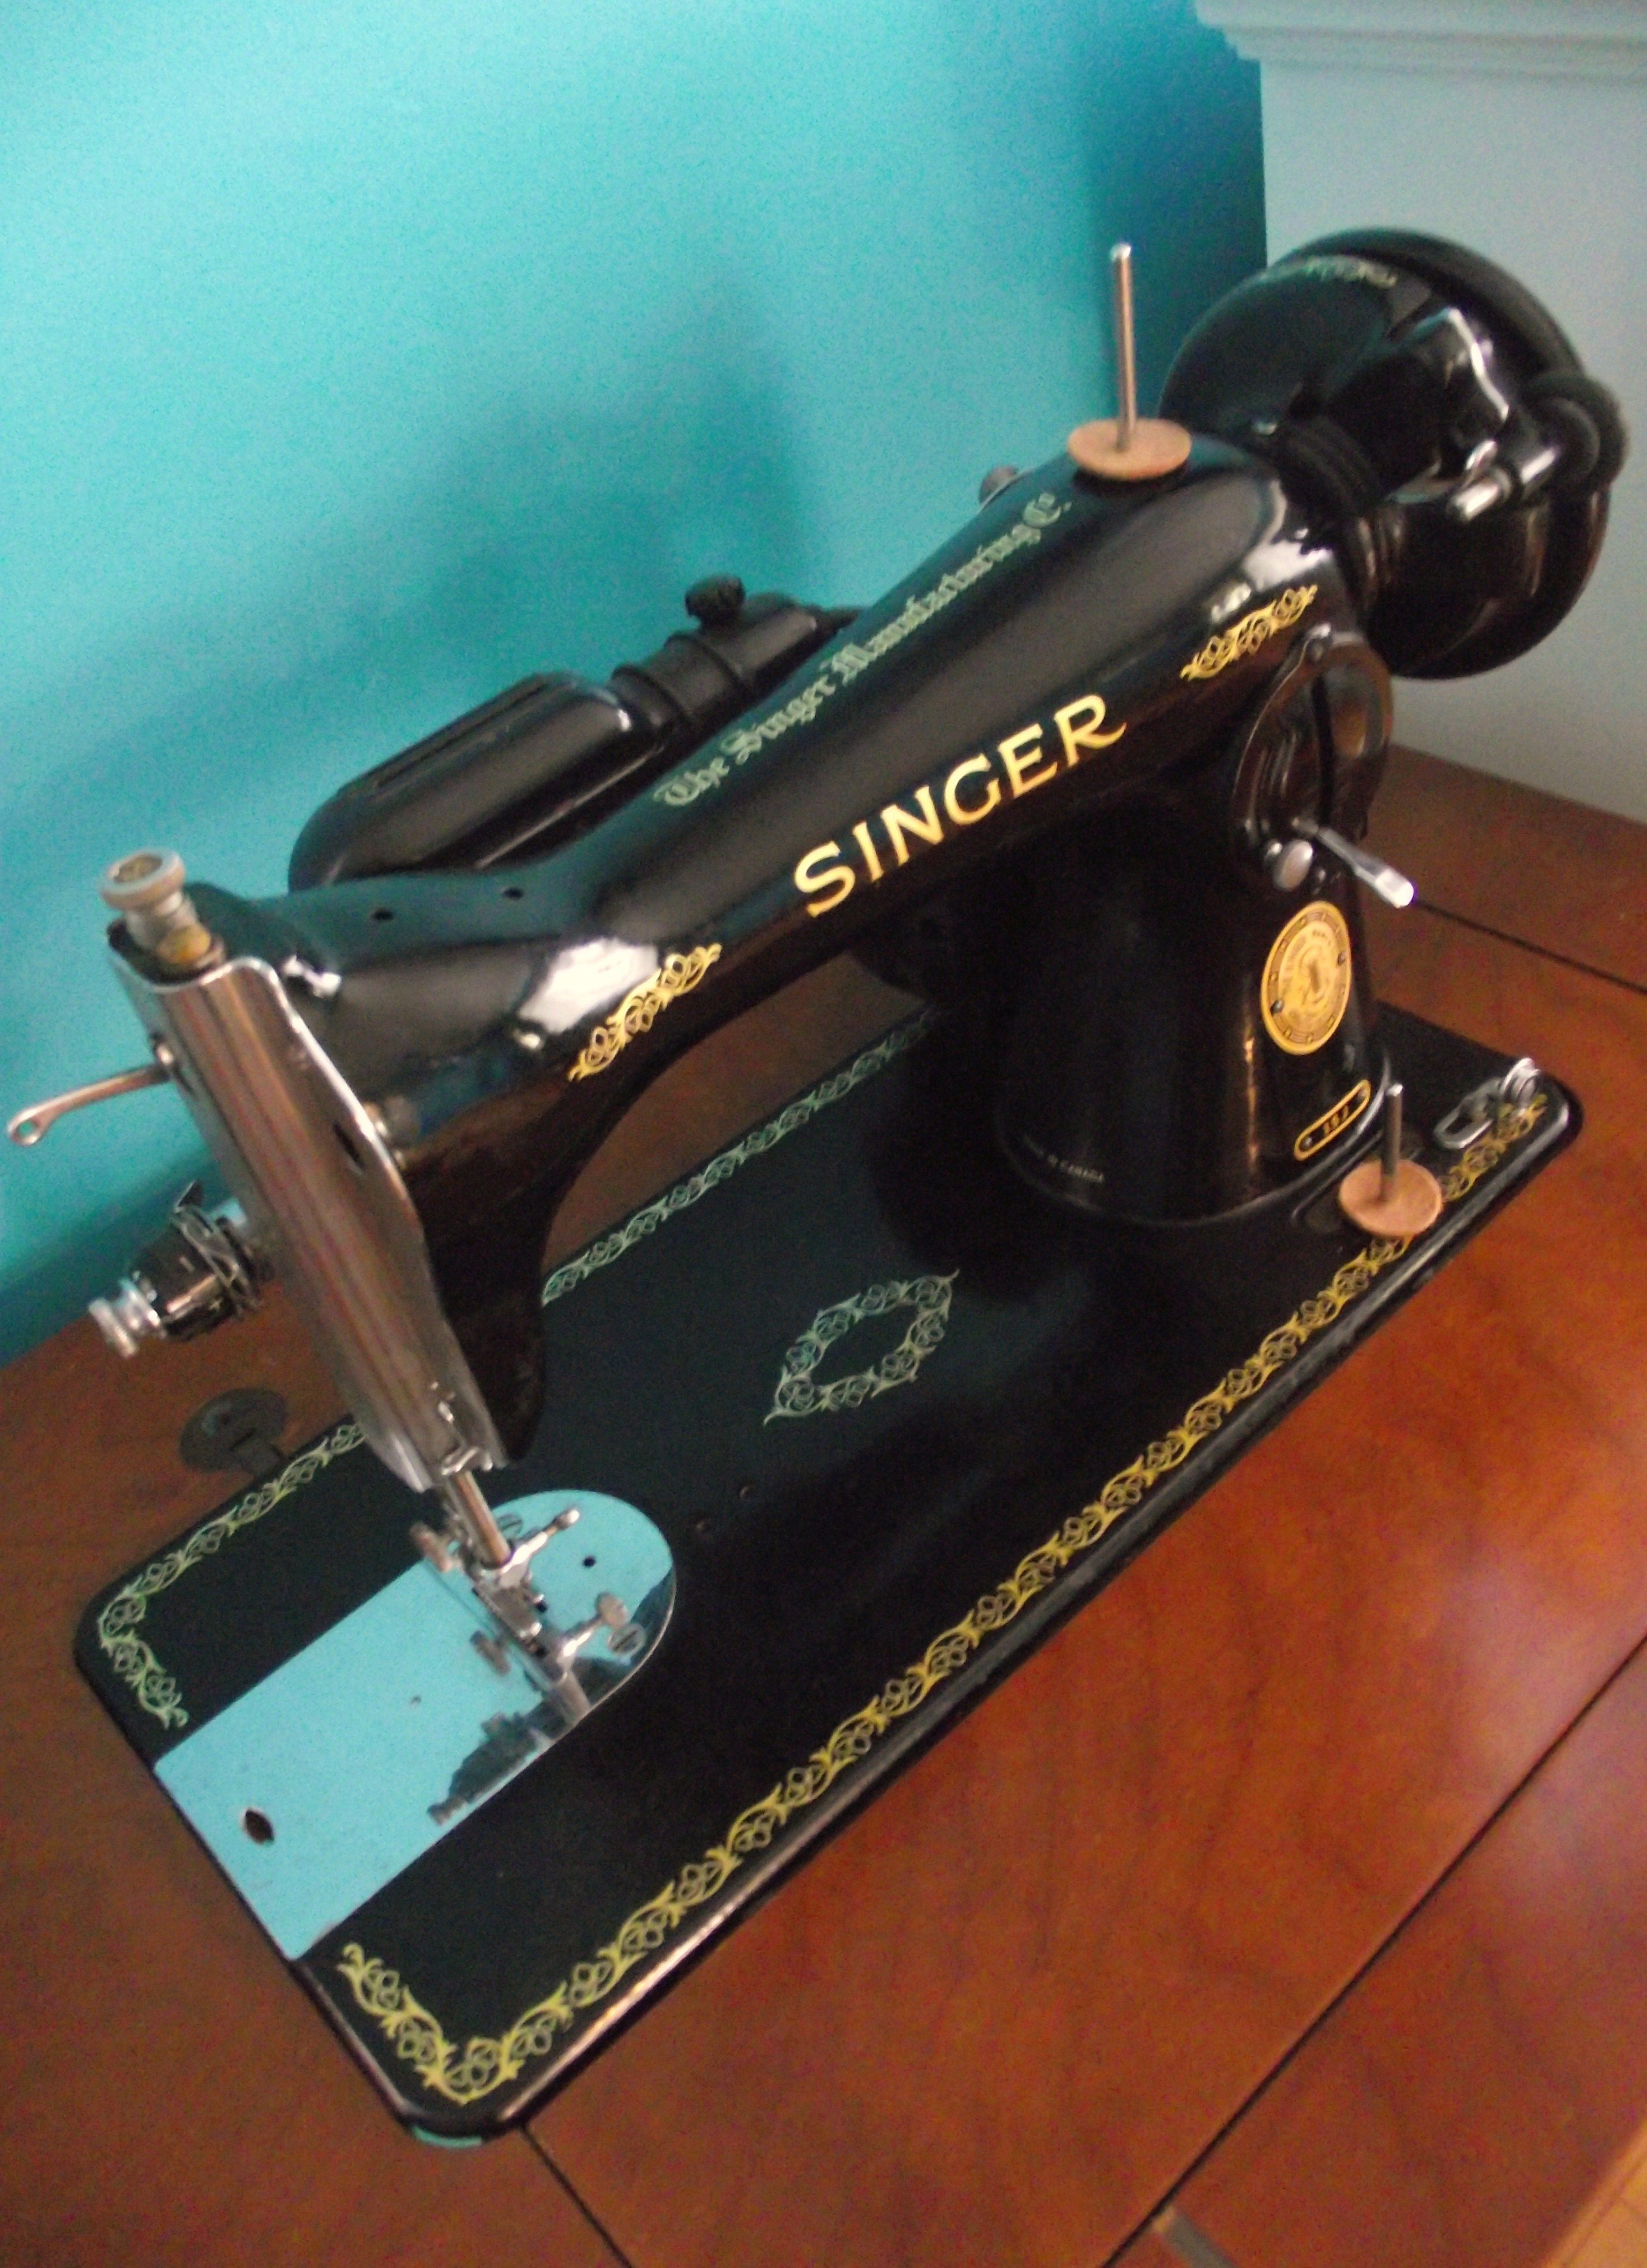 1948 Singer Sewing Machine Exactly What I Was Just Given Beautiful Vintage Threading Guides Stitch Nerd Now To Learn Sew Hahaha